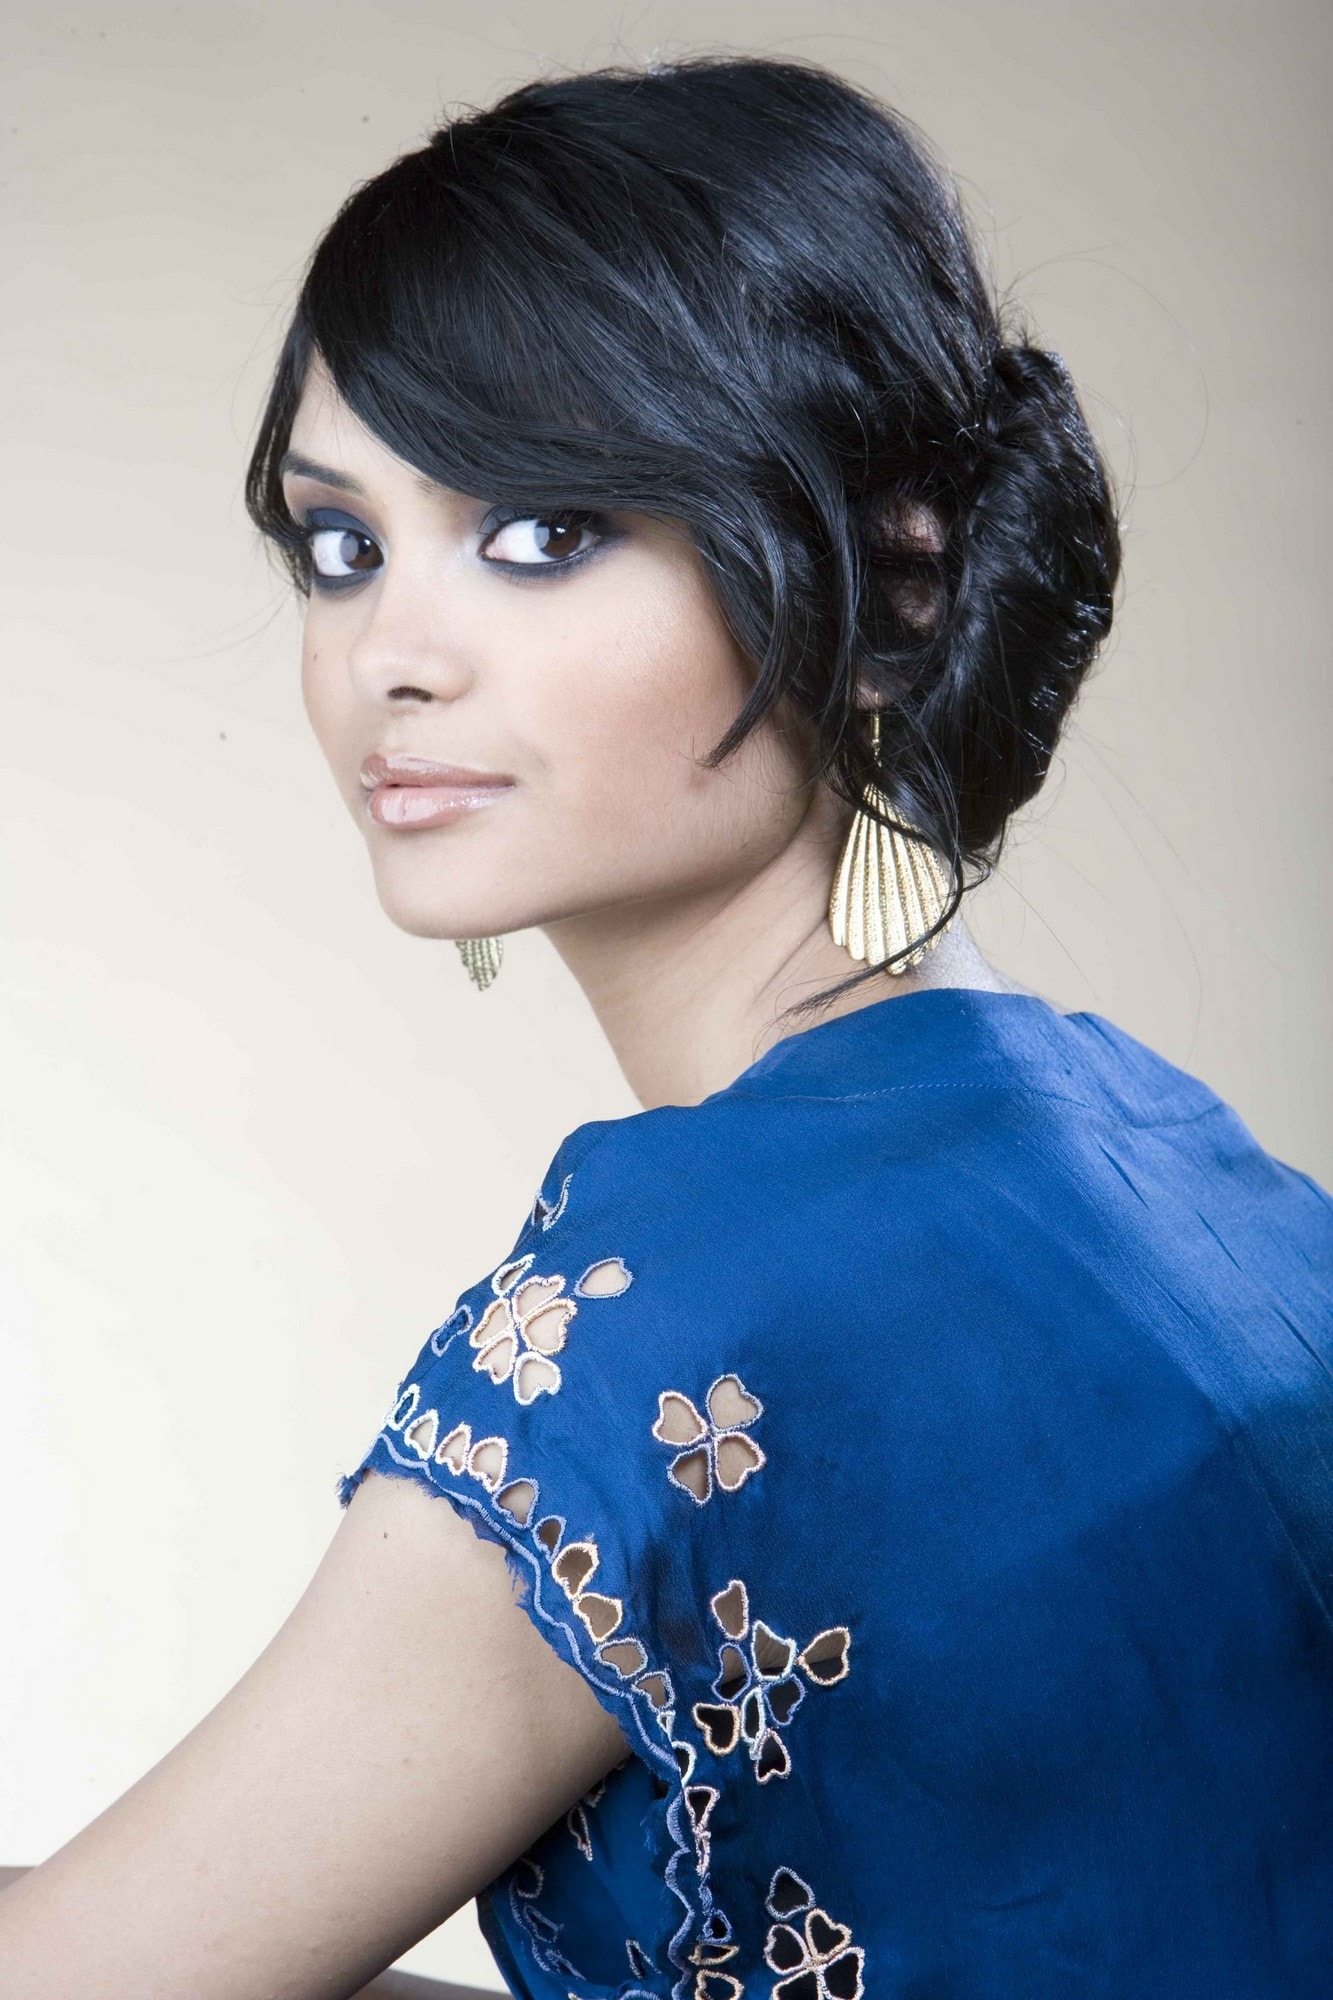 Afshan Azad Wallpaper